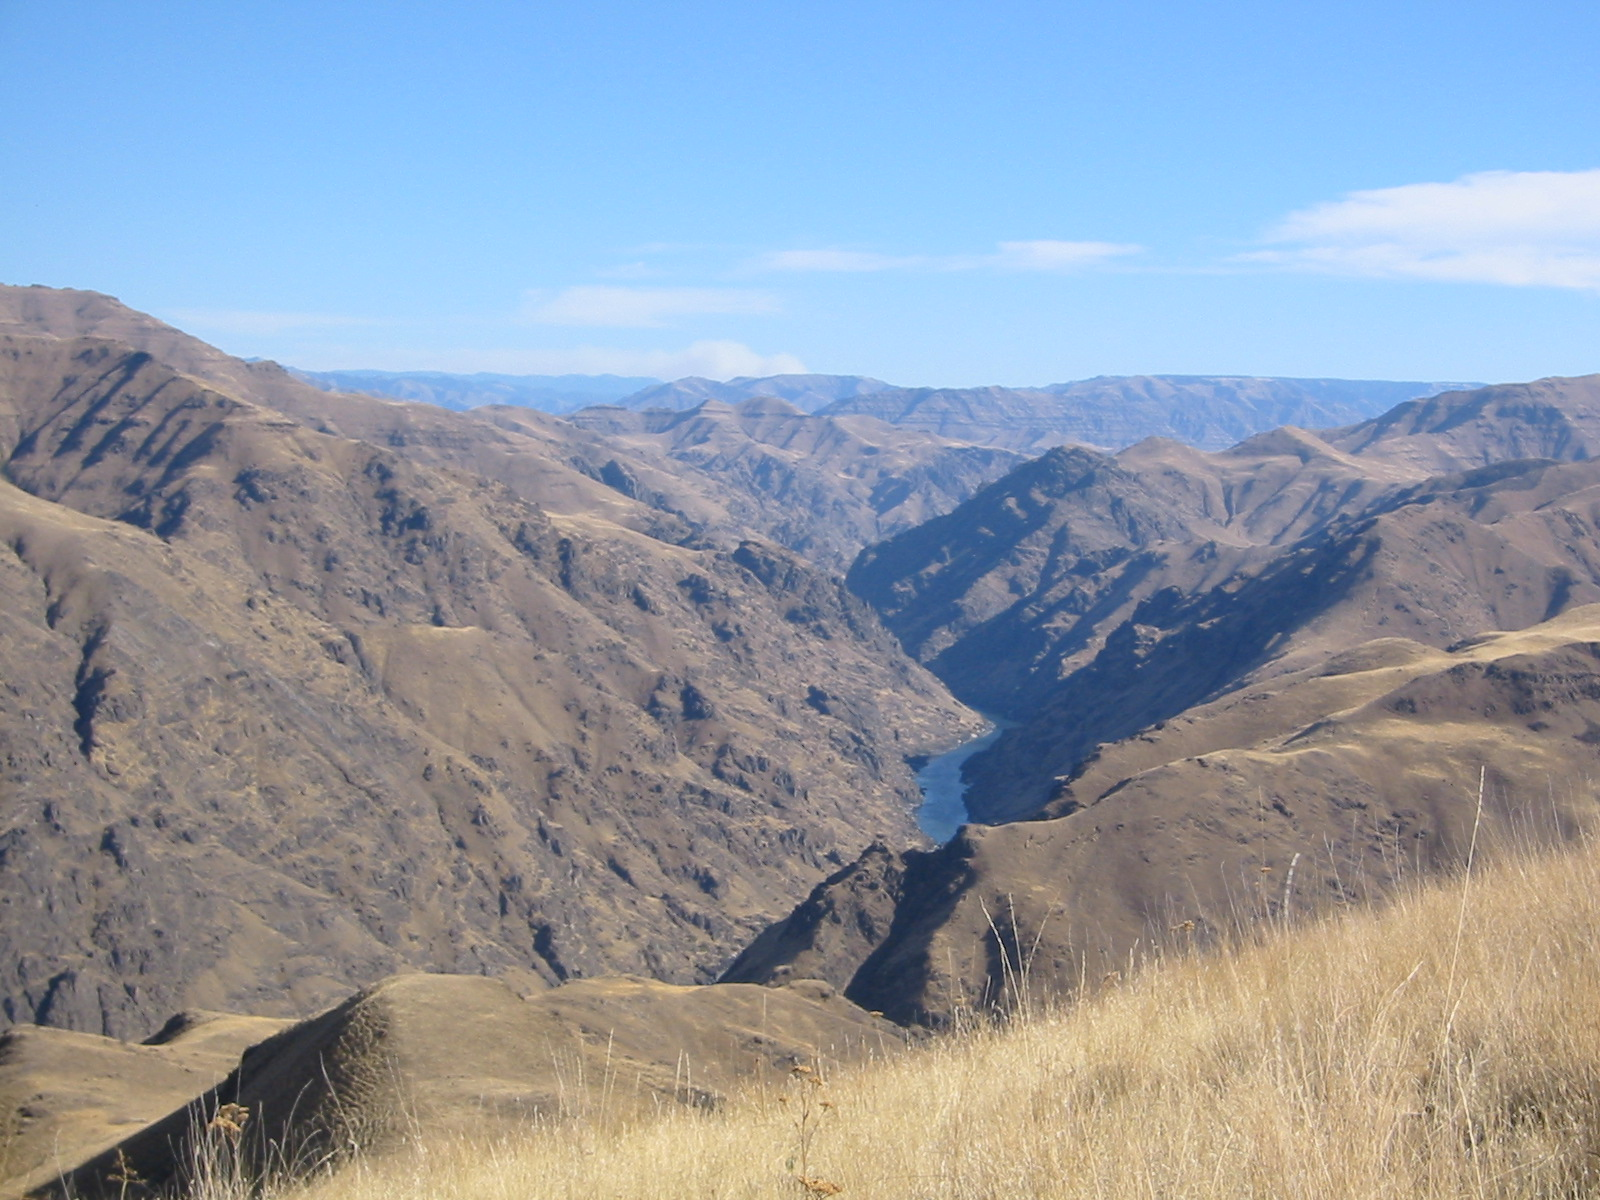 Open grassy ridge with Snake River in background